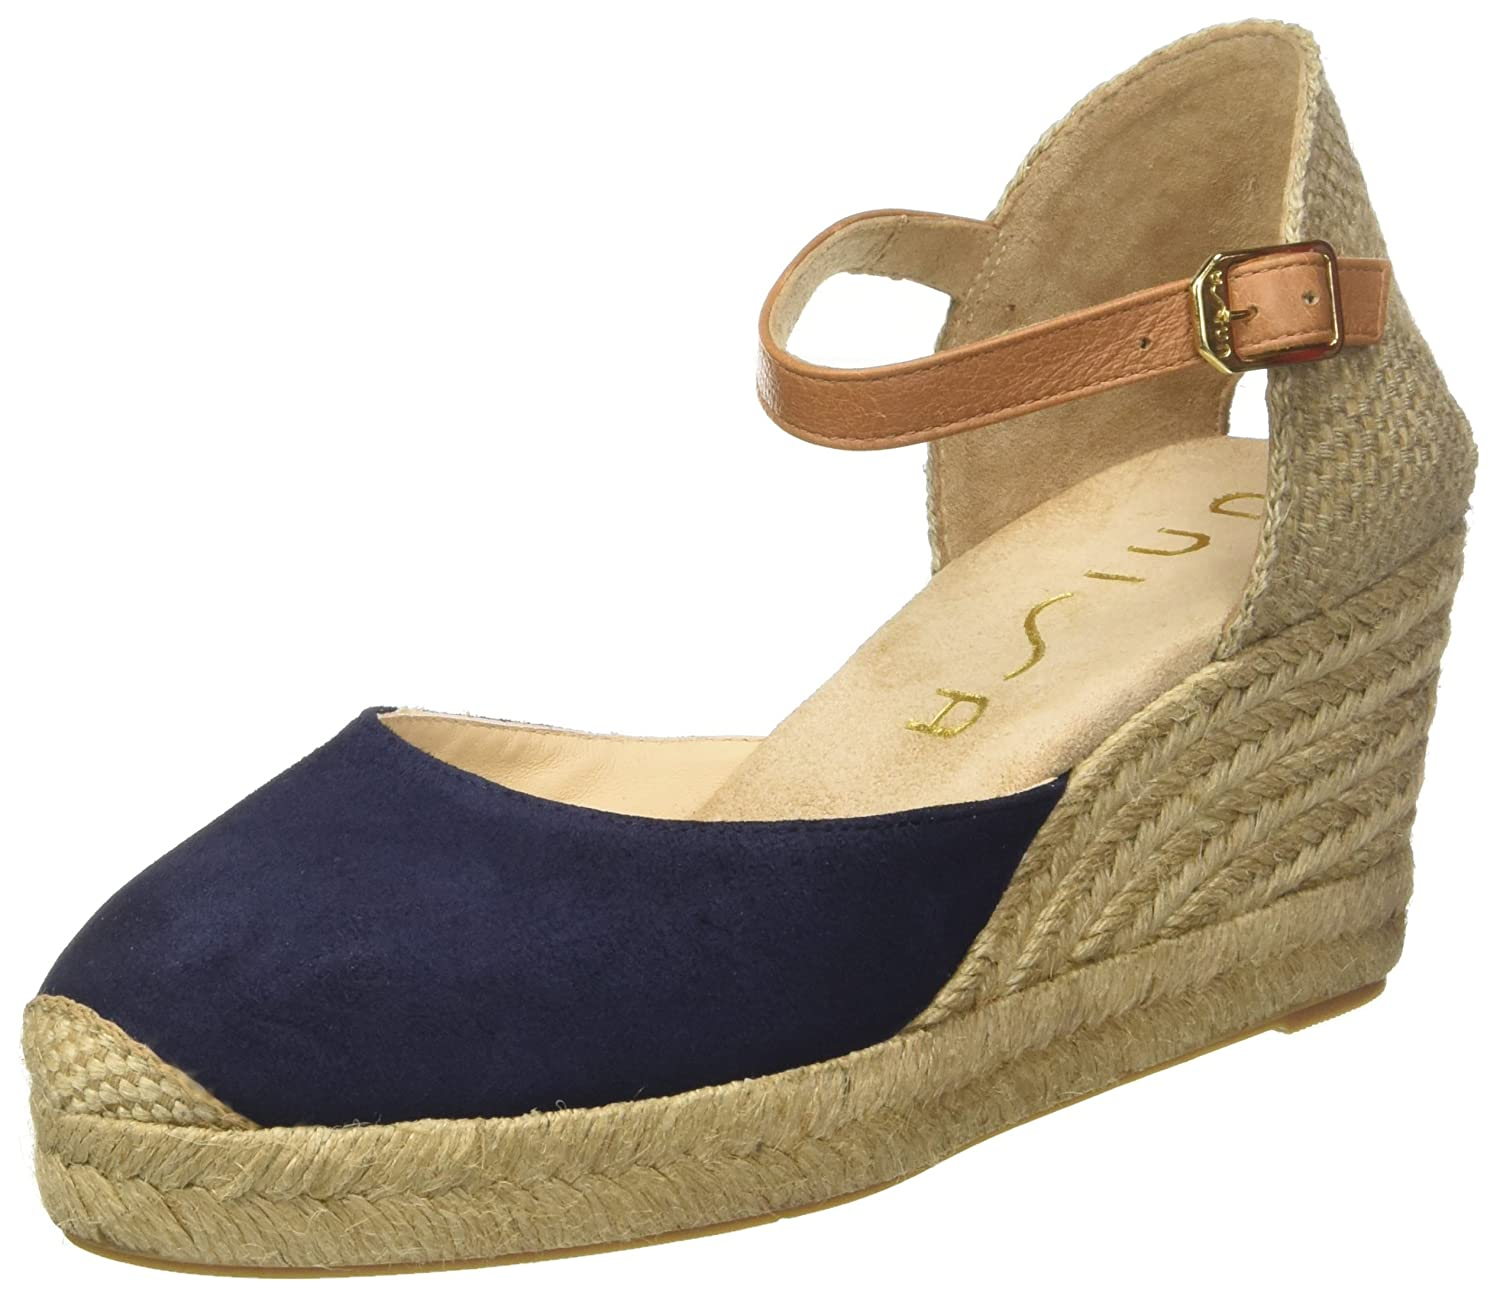 Unisa Caceres_18 Unisa_KS, B077Z553CJ Espadrilles Caceres_18_KS, Femme Bleu (Ocean) 883be39 - fast-weightloss-diet.space